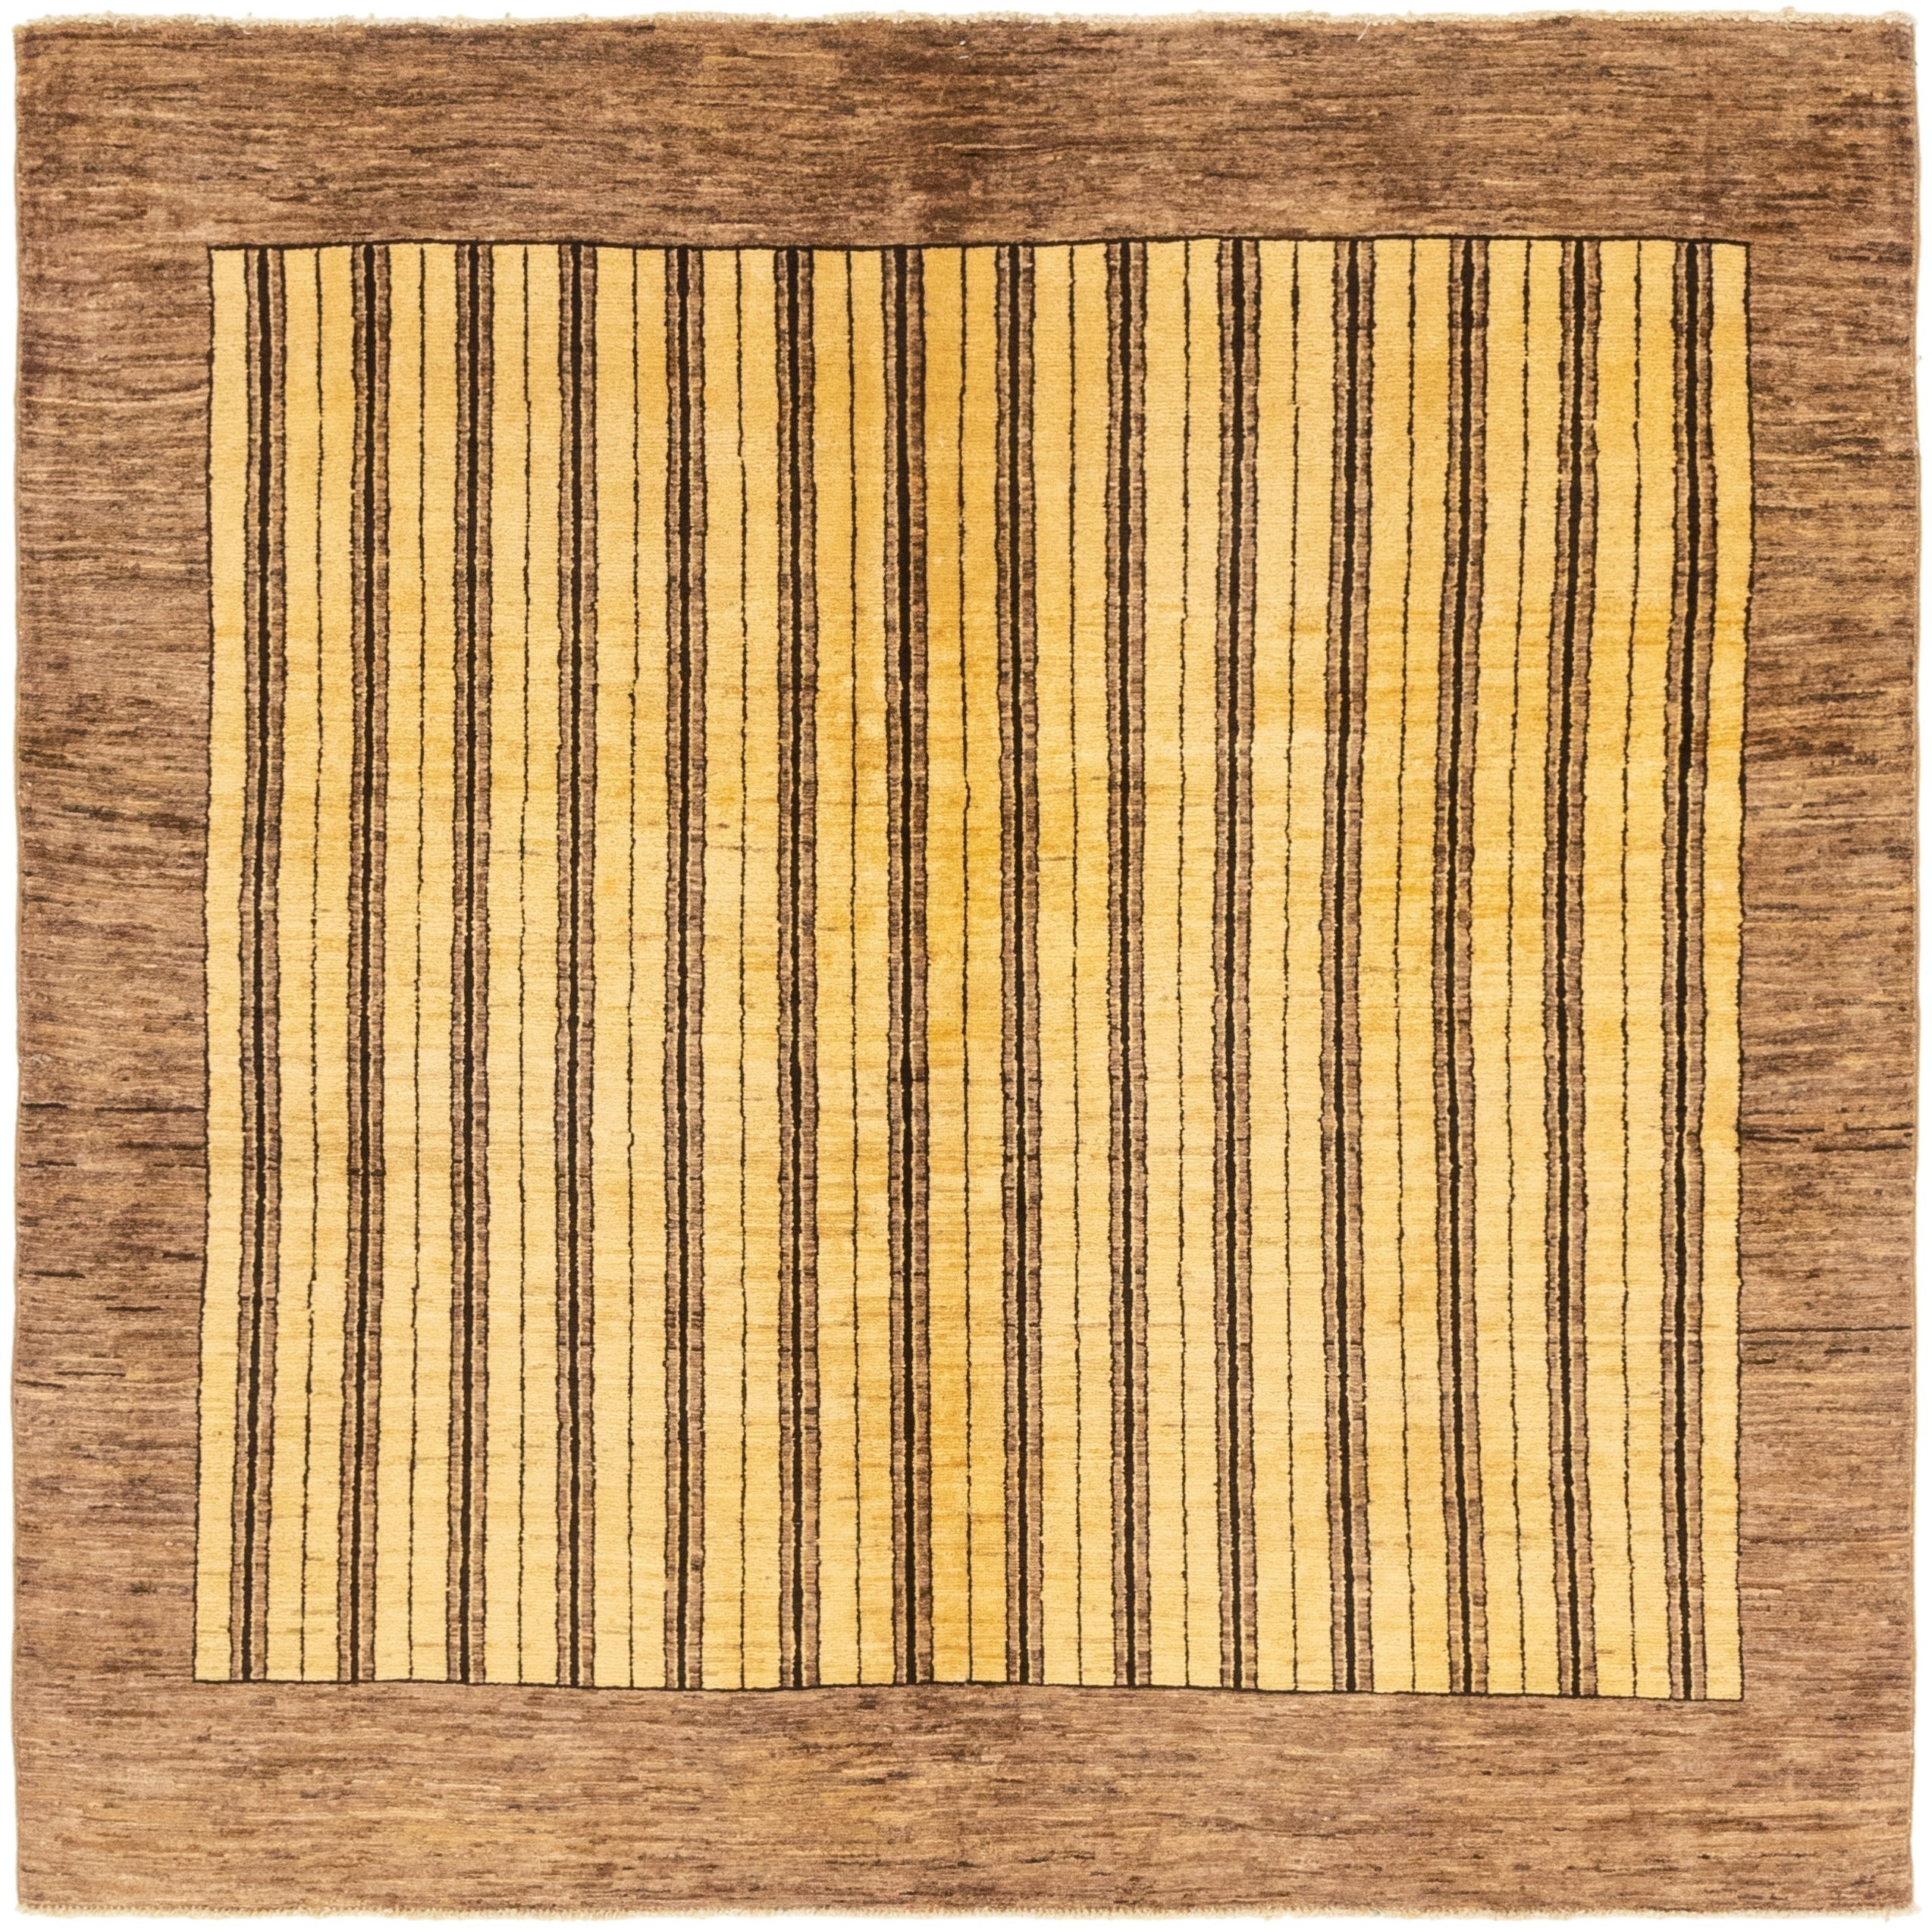 Hand Knotted Kashkuli Gabbeh Wool Square Rug - 6 4 x 6 5 (Cream - 6 4 x 6 5)